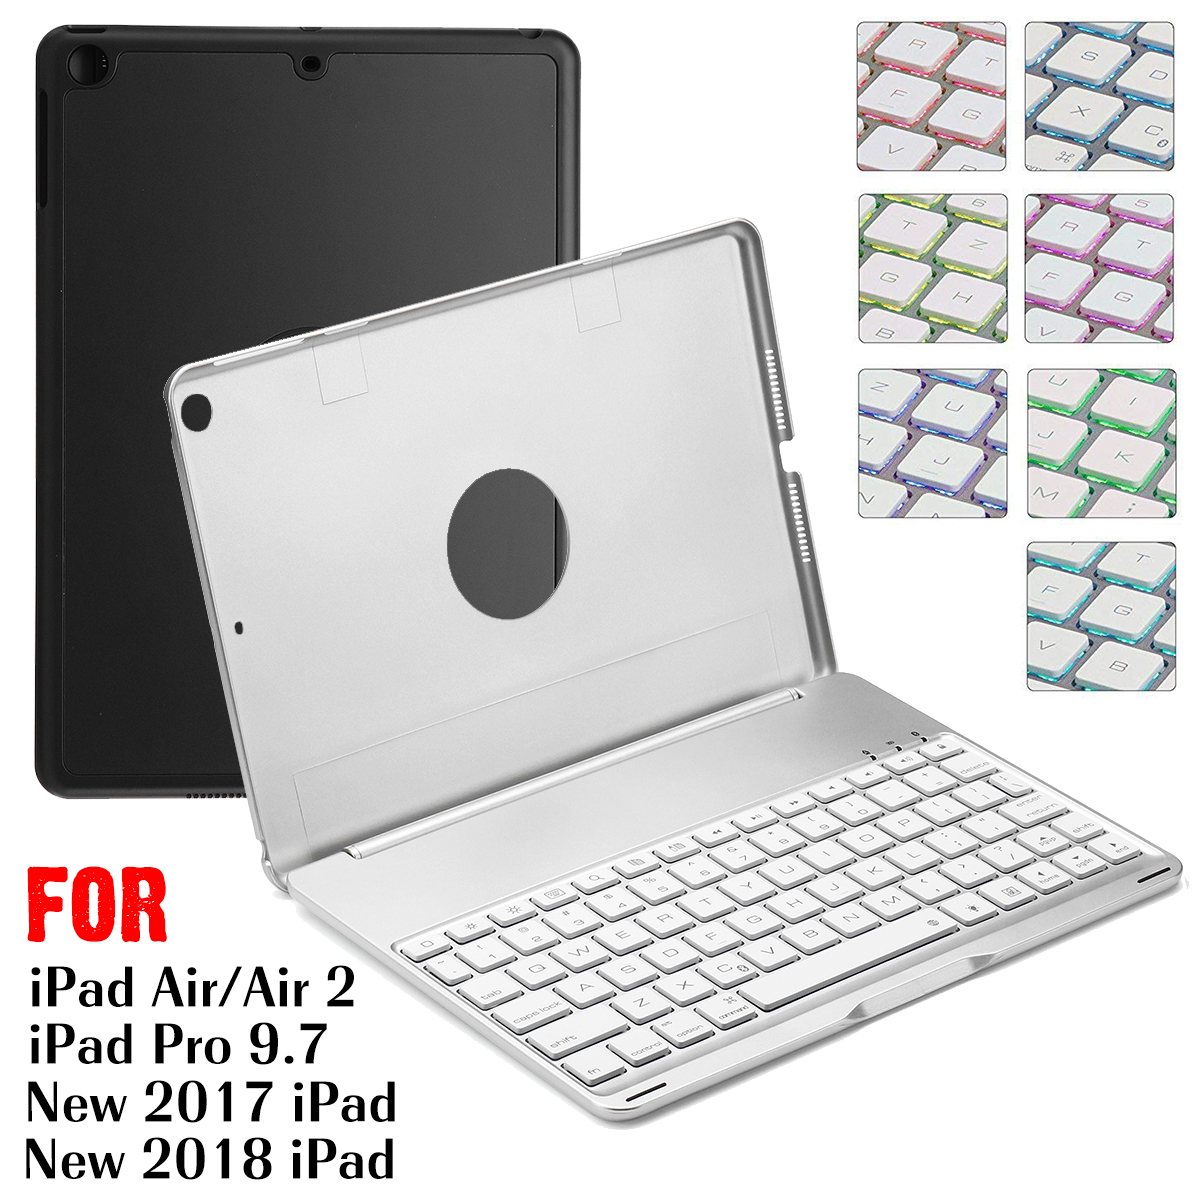 Tablet Case For iPad Keyboard Cover Case Bluetooth Wireless Keyboard Backlit For iPad Air 1 Case For 9.7 inch Cover Stand Holder epson 26 c13t26144012 yellow картридж для xp 600 xp 700 xp 800